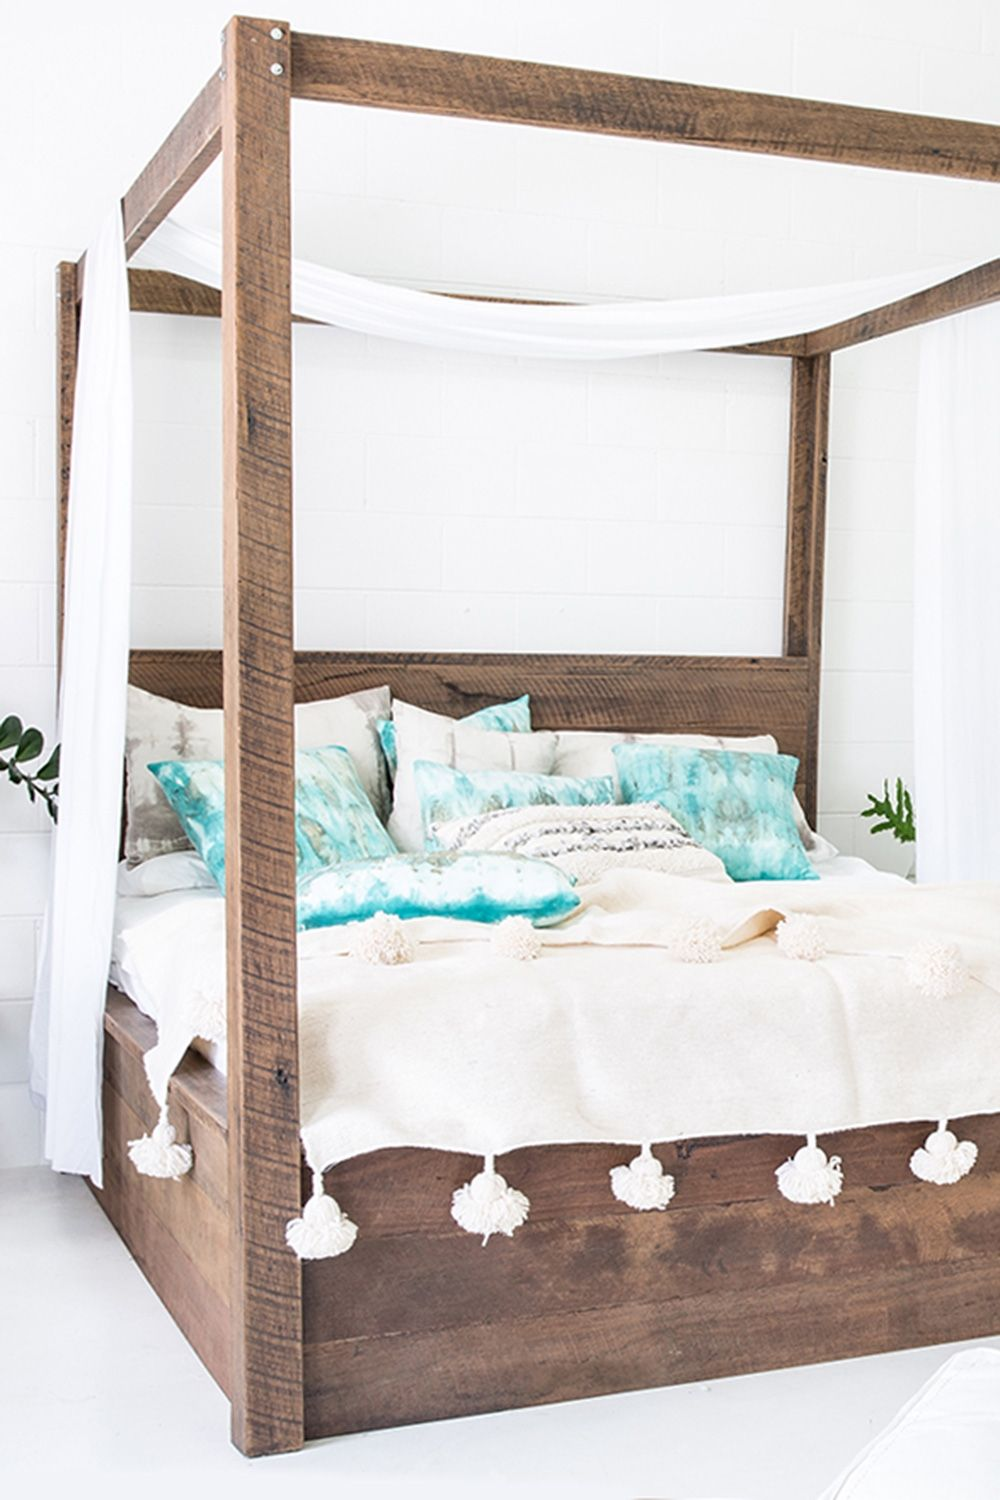 Best 3 000 00 The Four Poster Bed Symbolises Romance 640 x 480